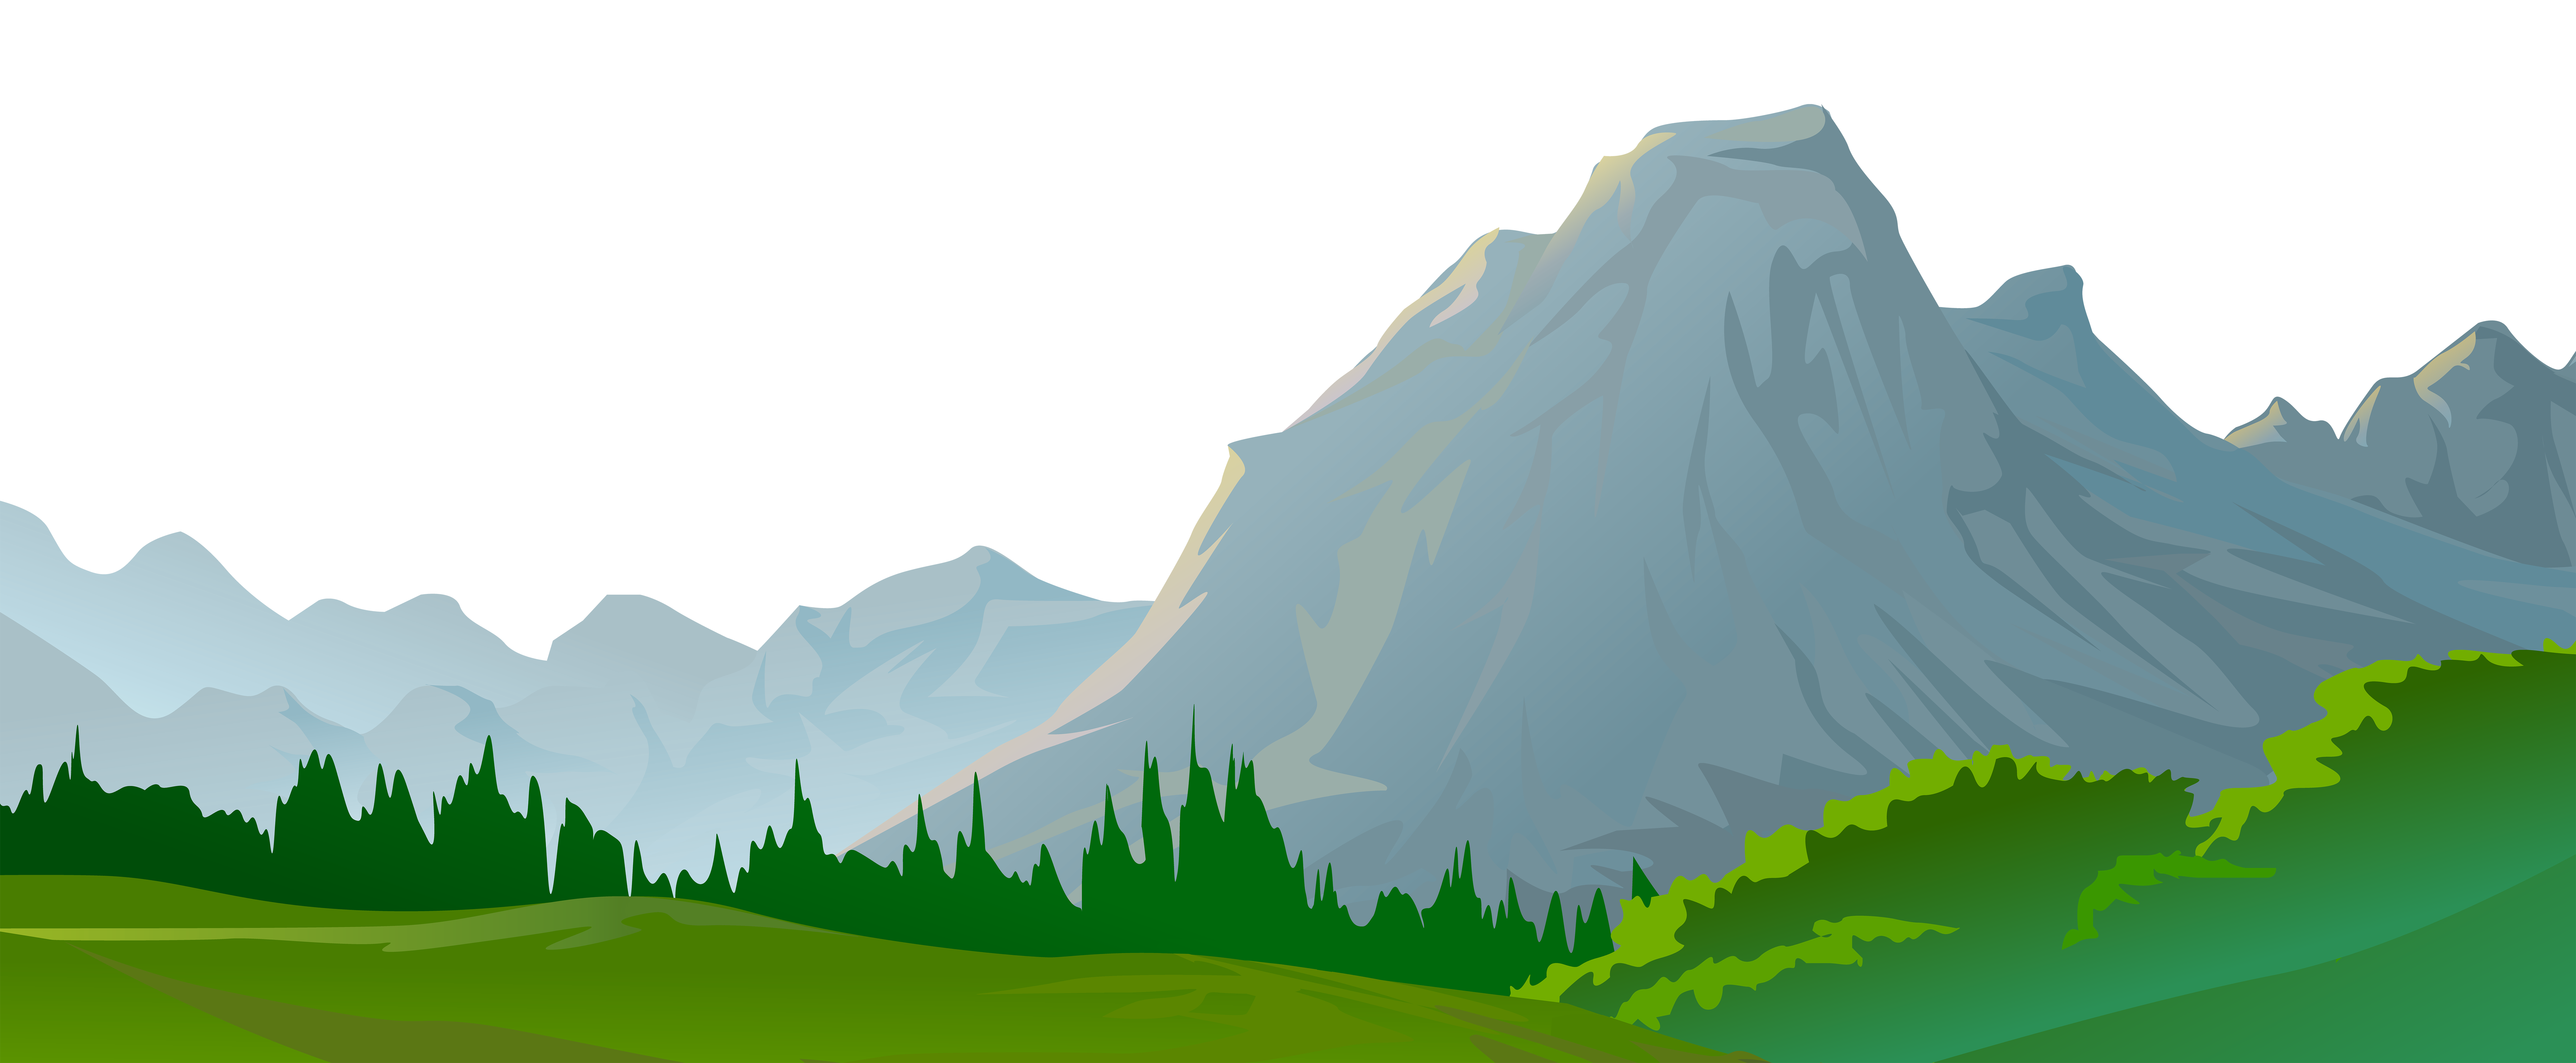 mountain clipart view